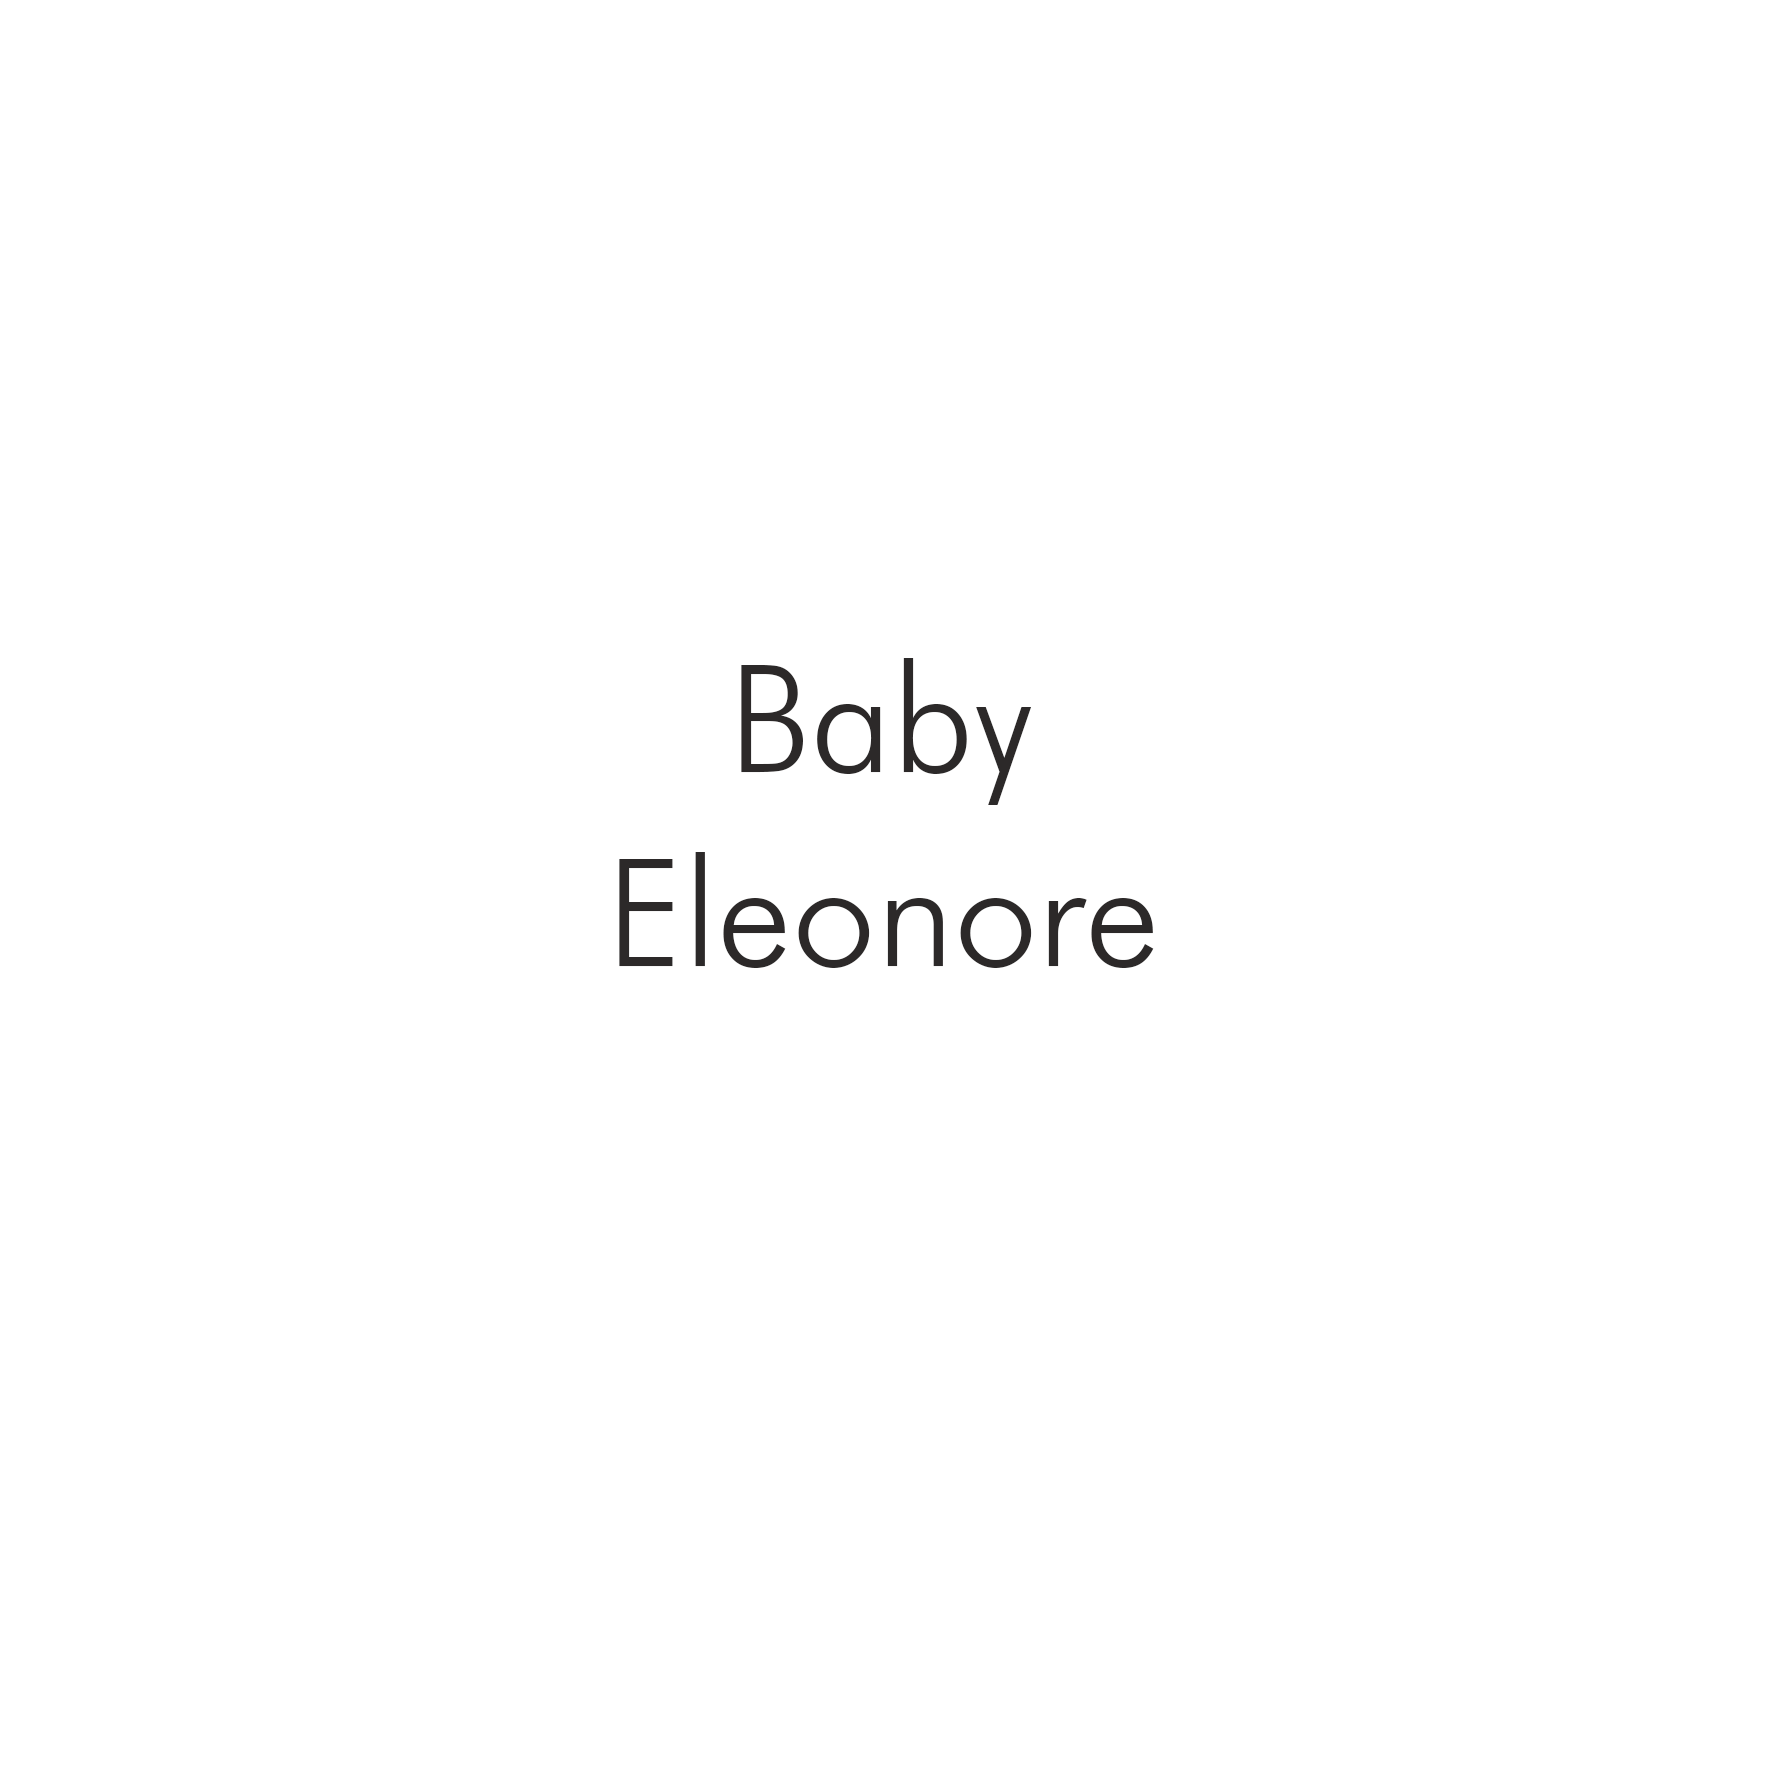 Baby Eleonore.png